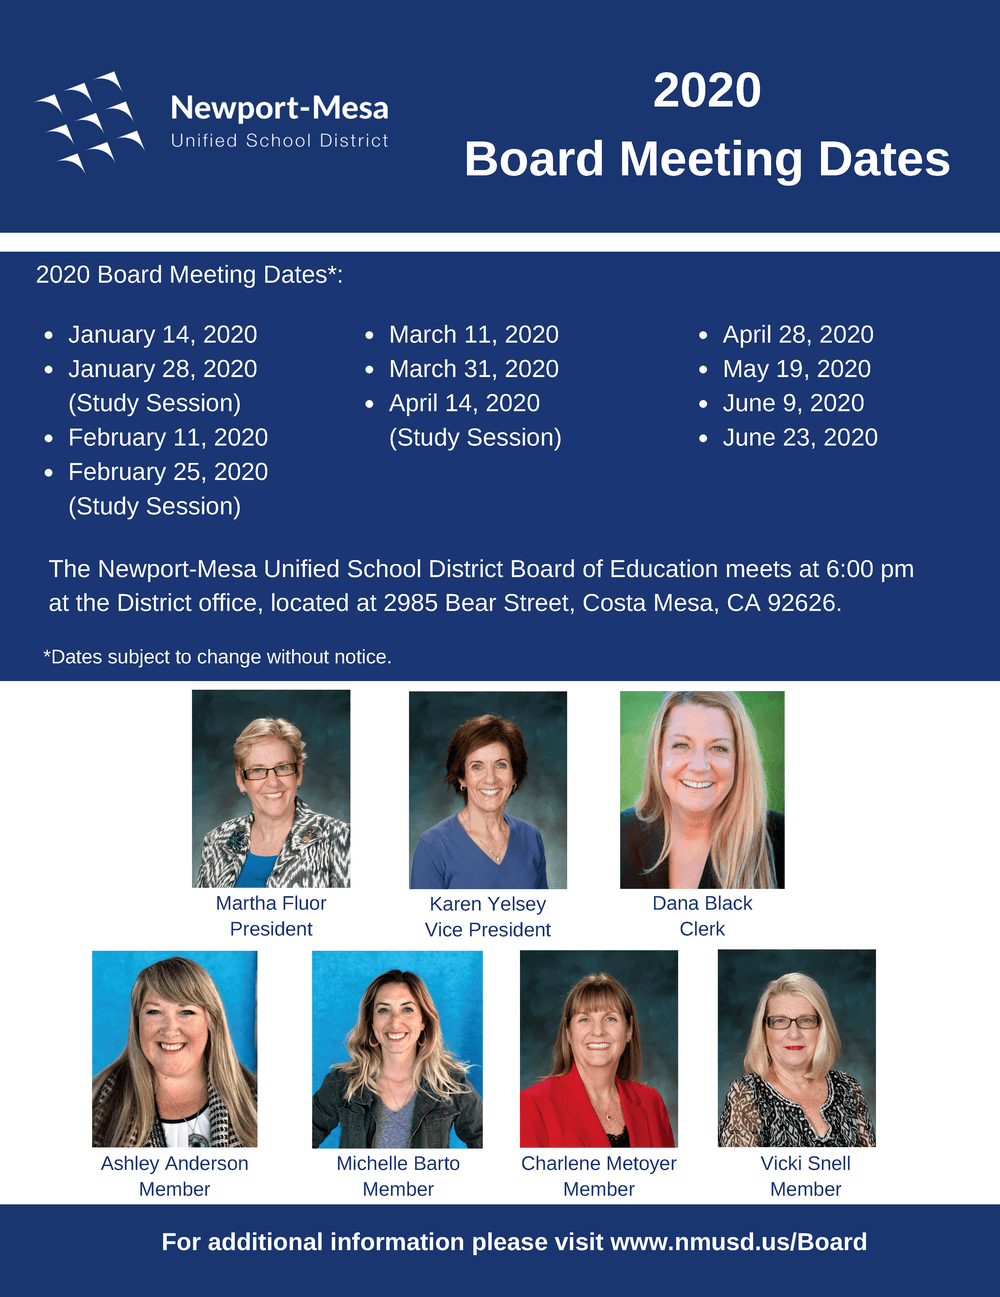 2020 Board Meeting Dates